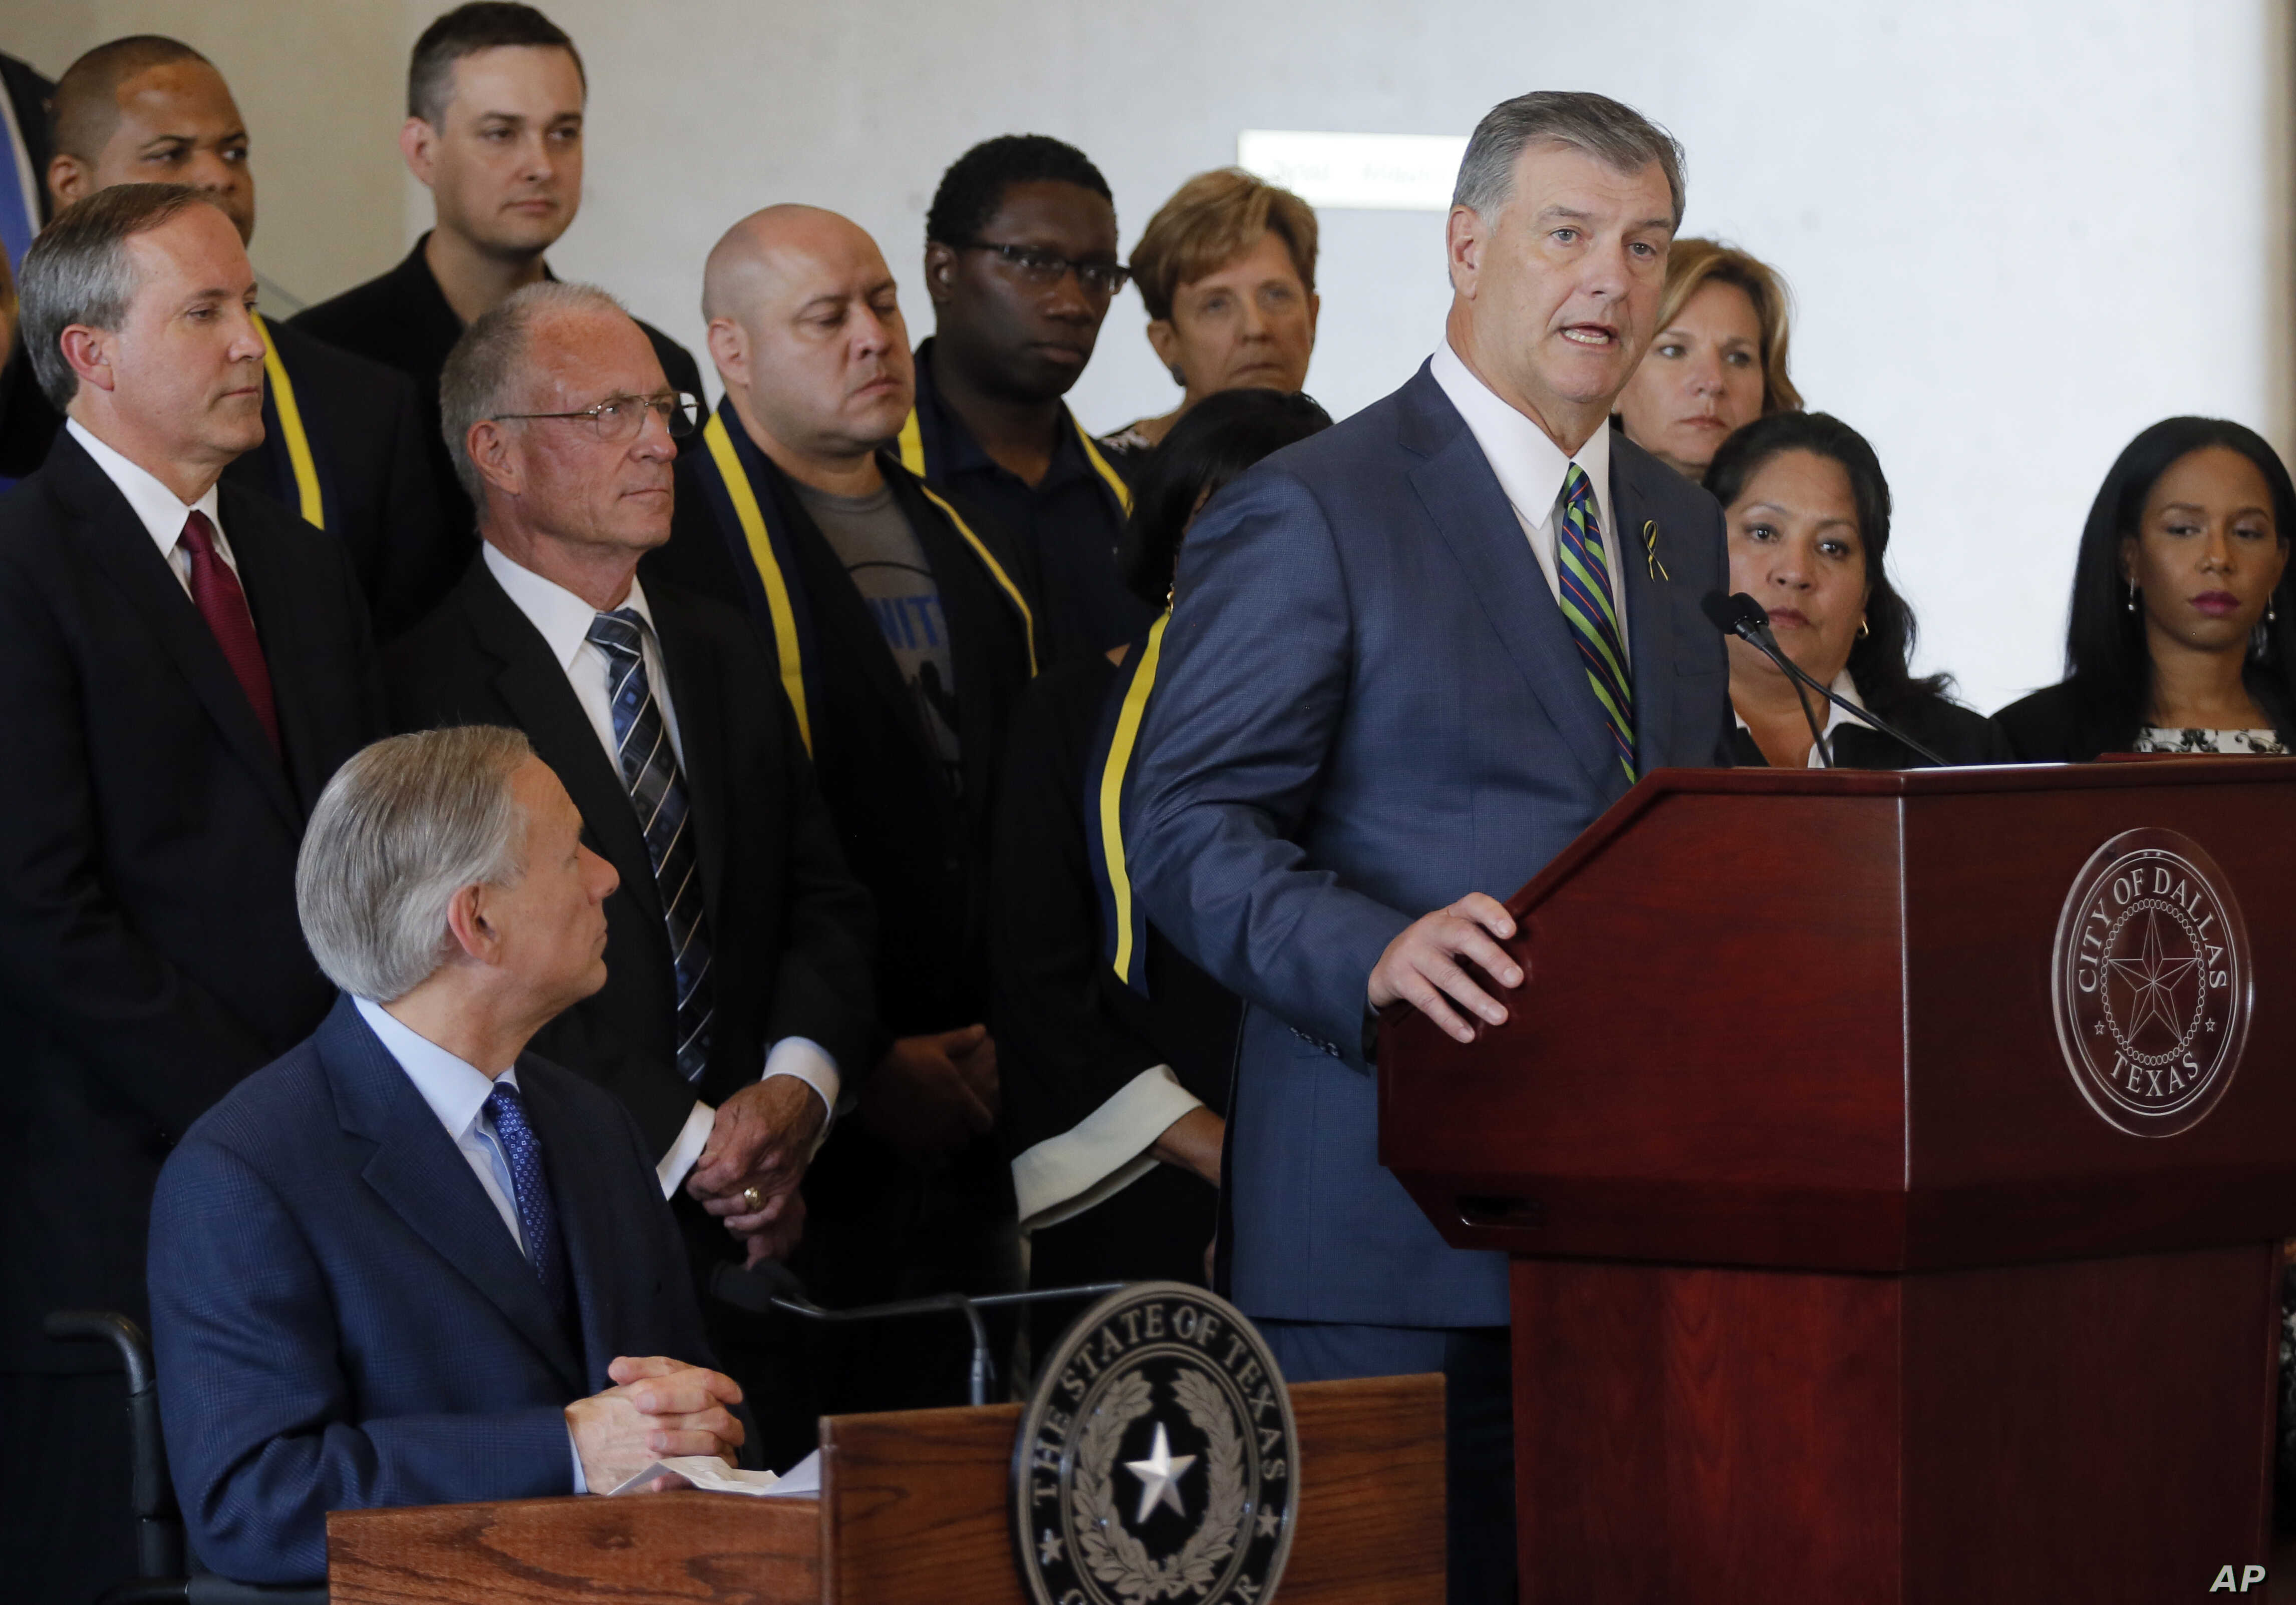 Texas Governor Greg Abbott, lower left, listens as Dallas Mayor Mike Rawlings, right, address the media during a news conference at city hall, in Dallas, July 8, 2016.